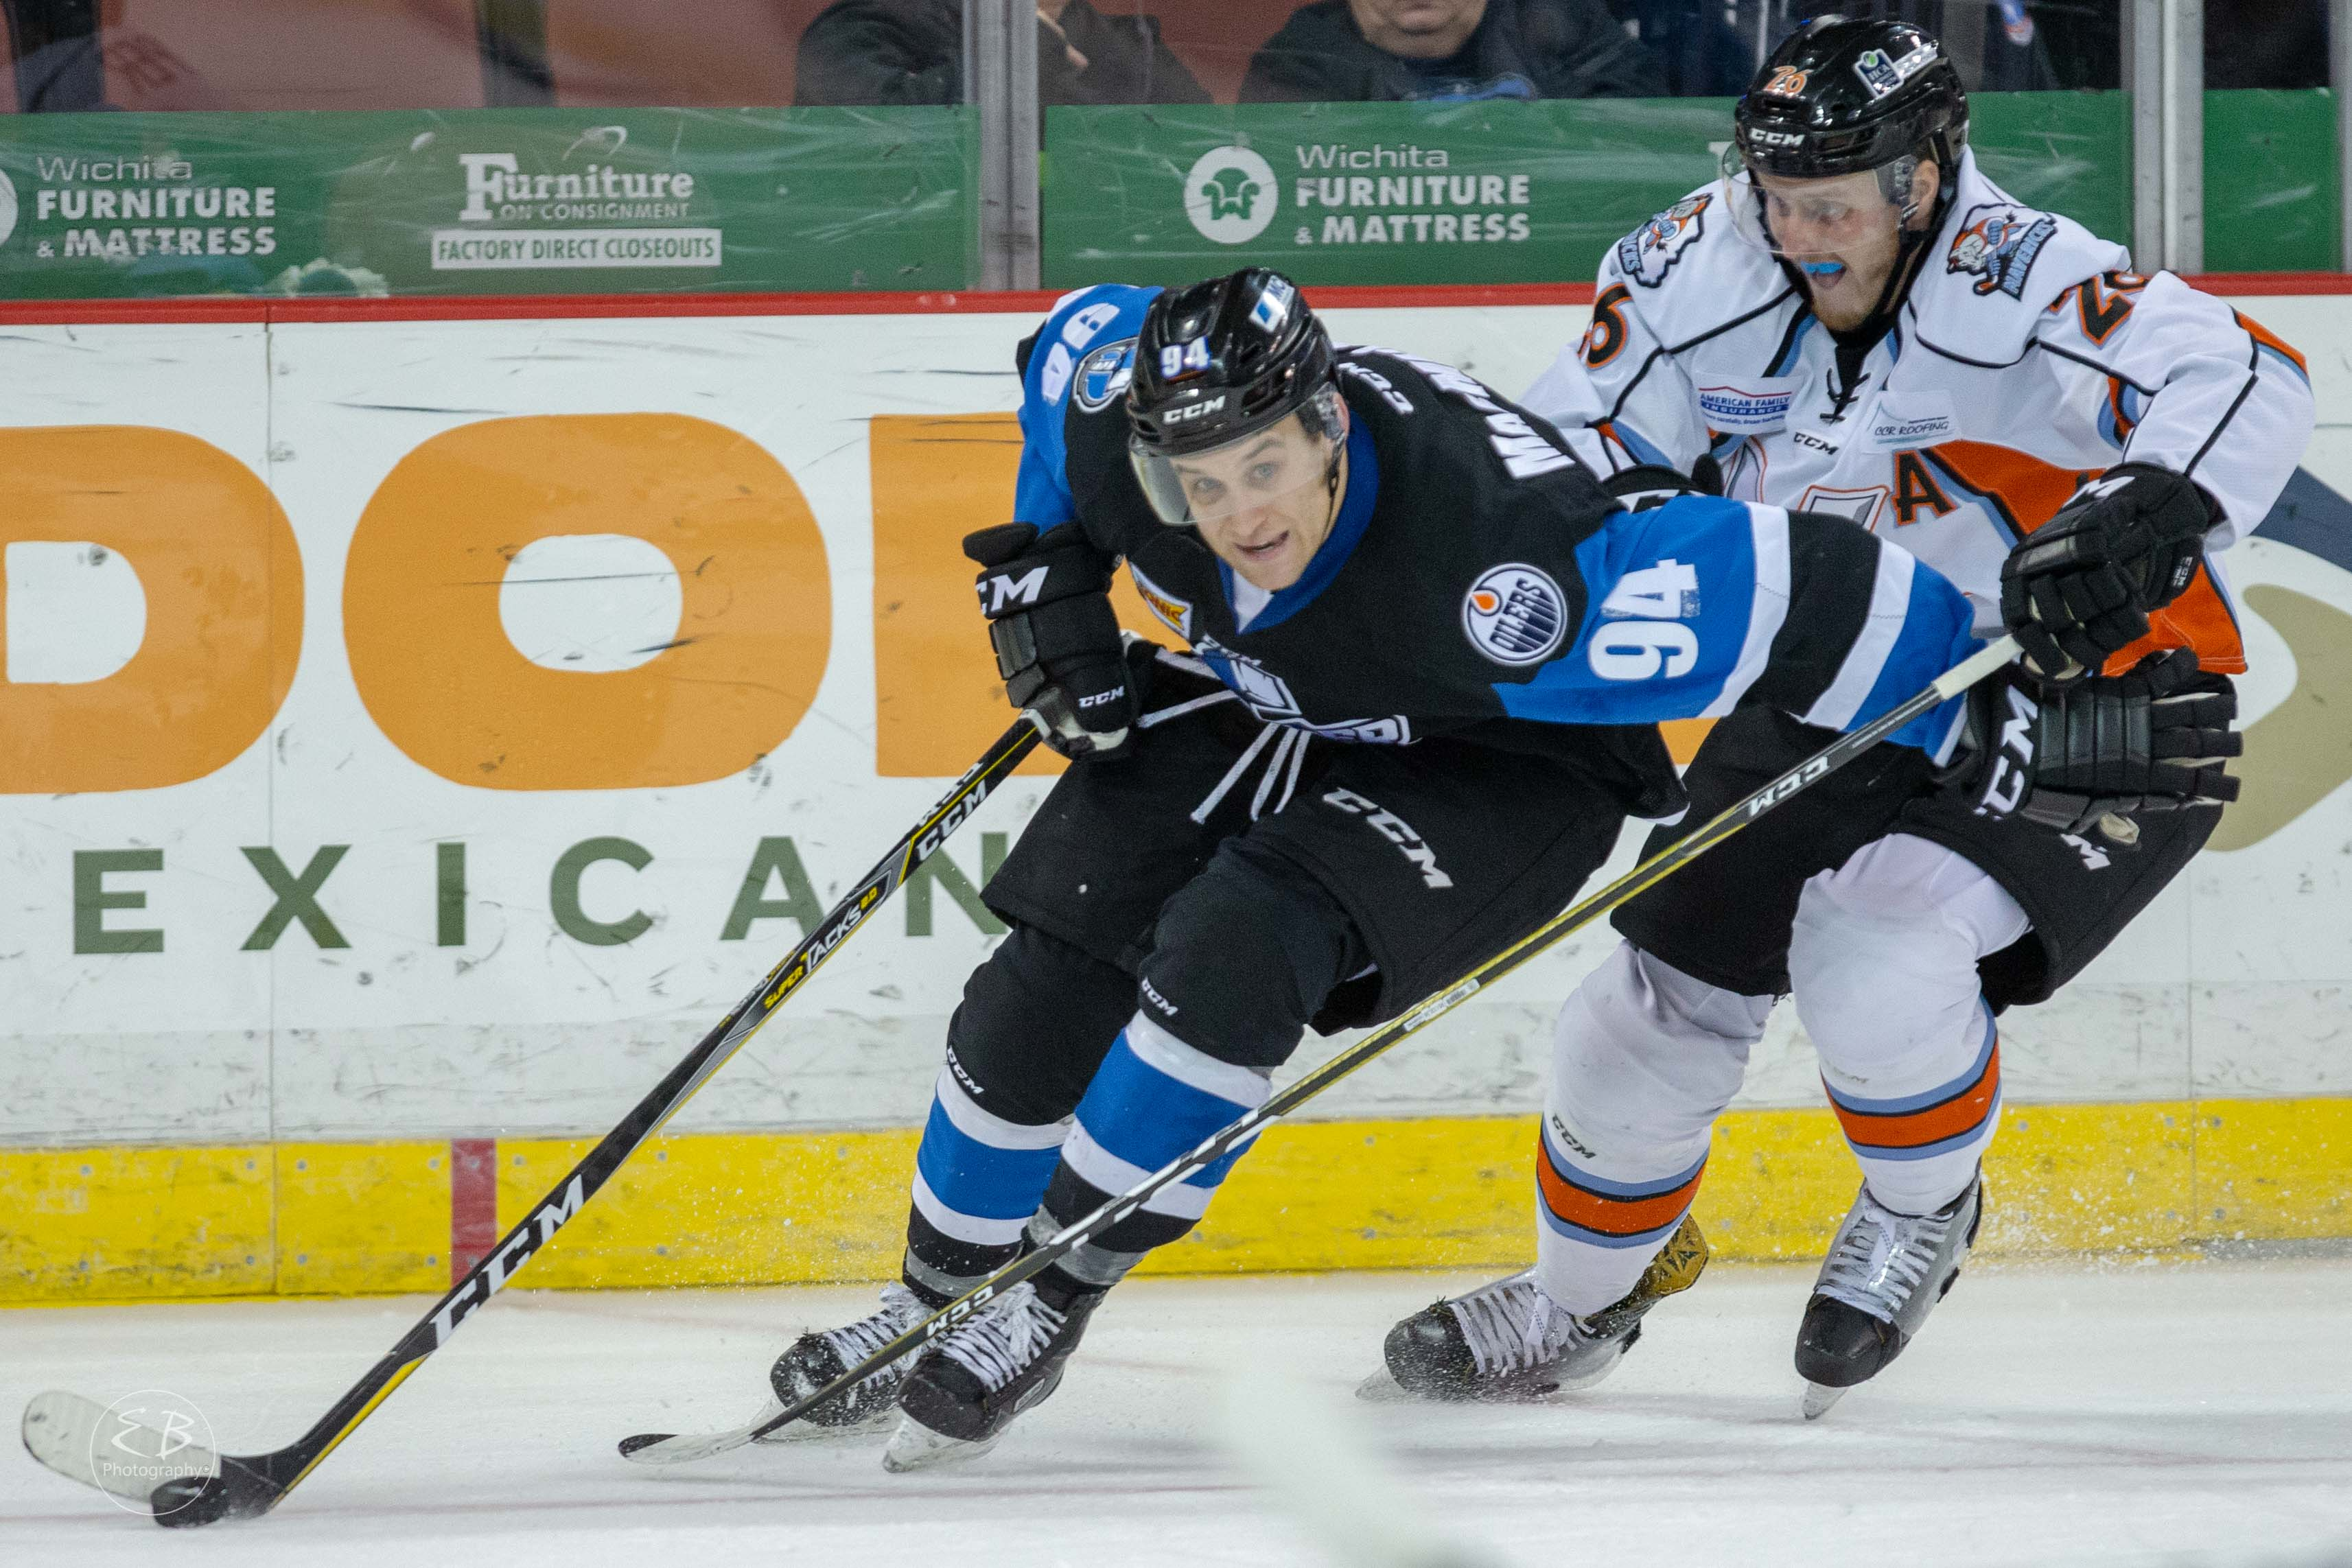 Two Goals by Pierre-Cedric Labrie Helps Thunder Snap Skid, 5-2